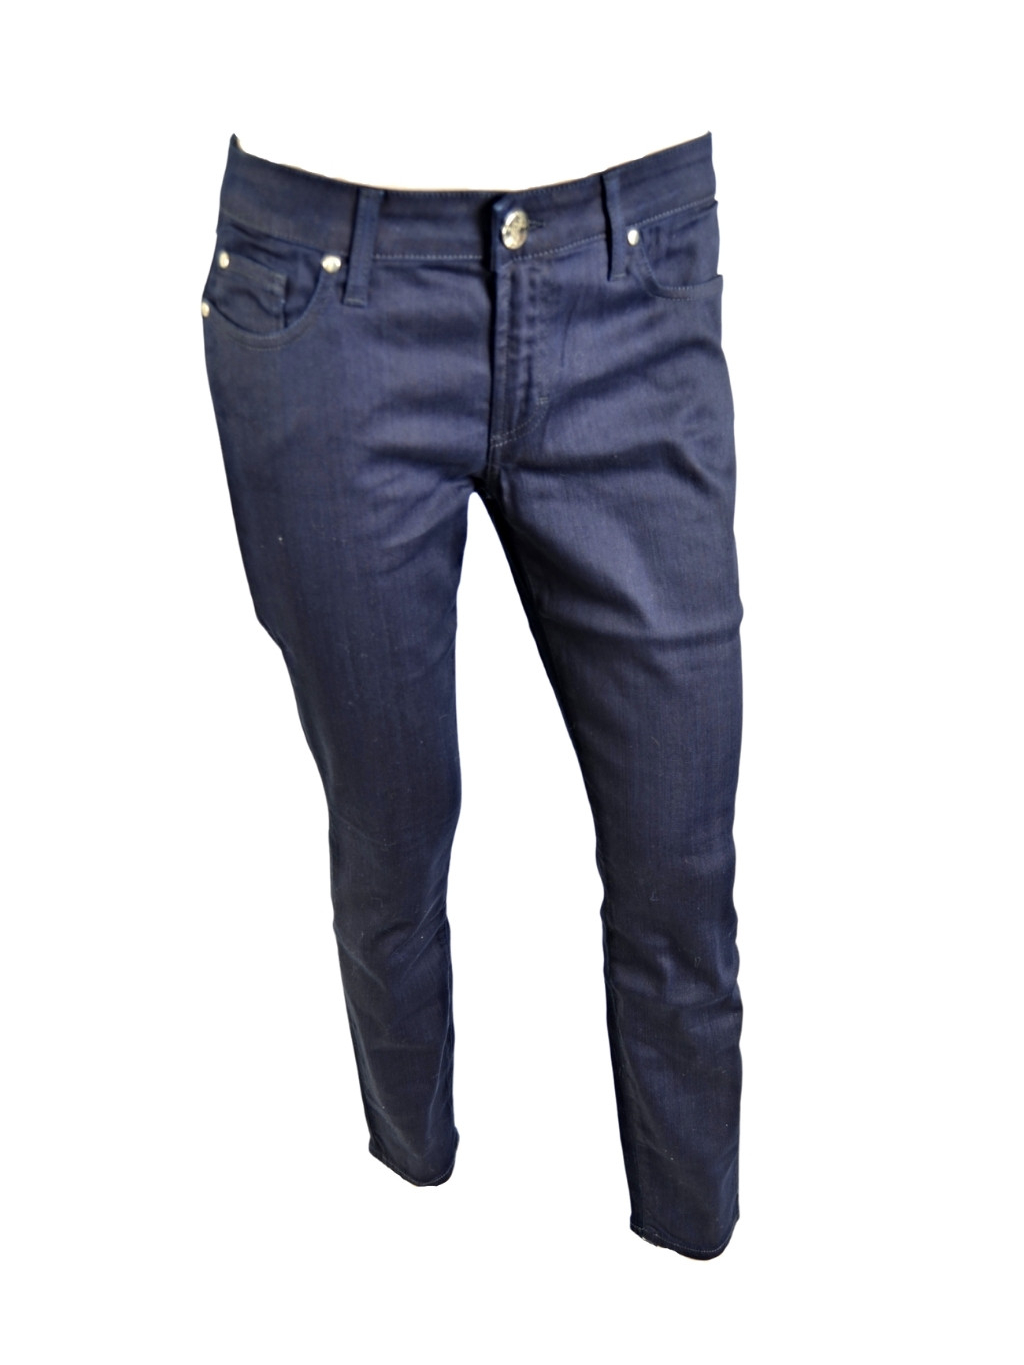 versace collection blu jeans G32944 2